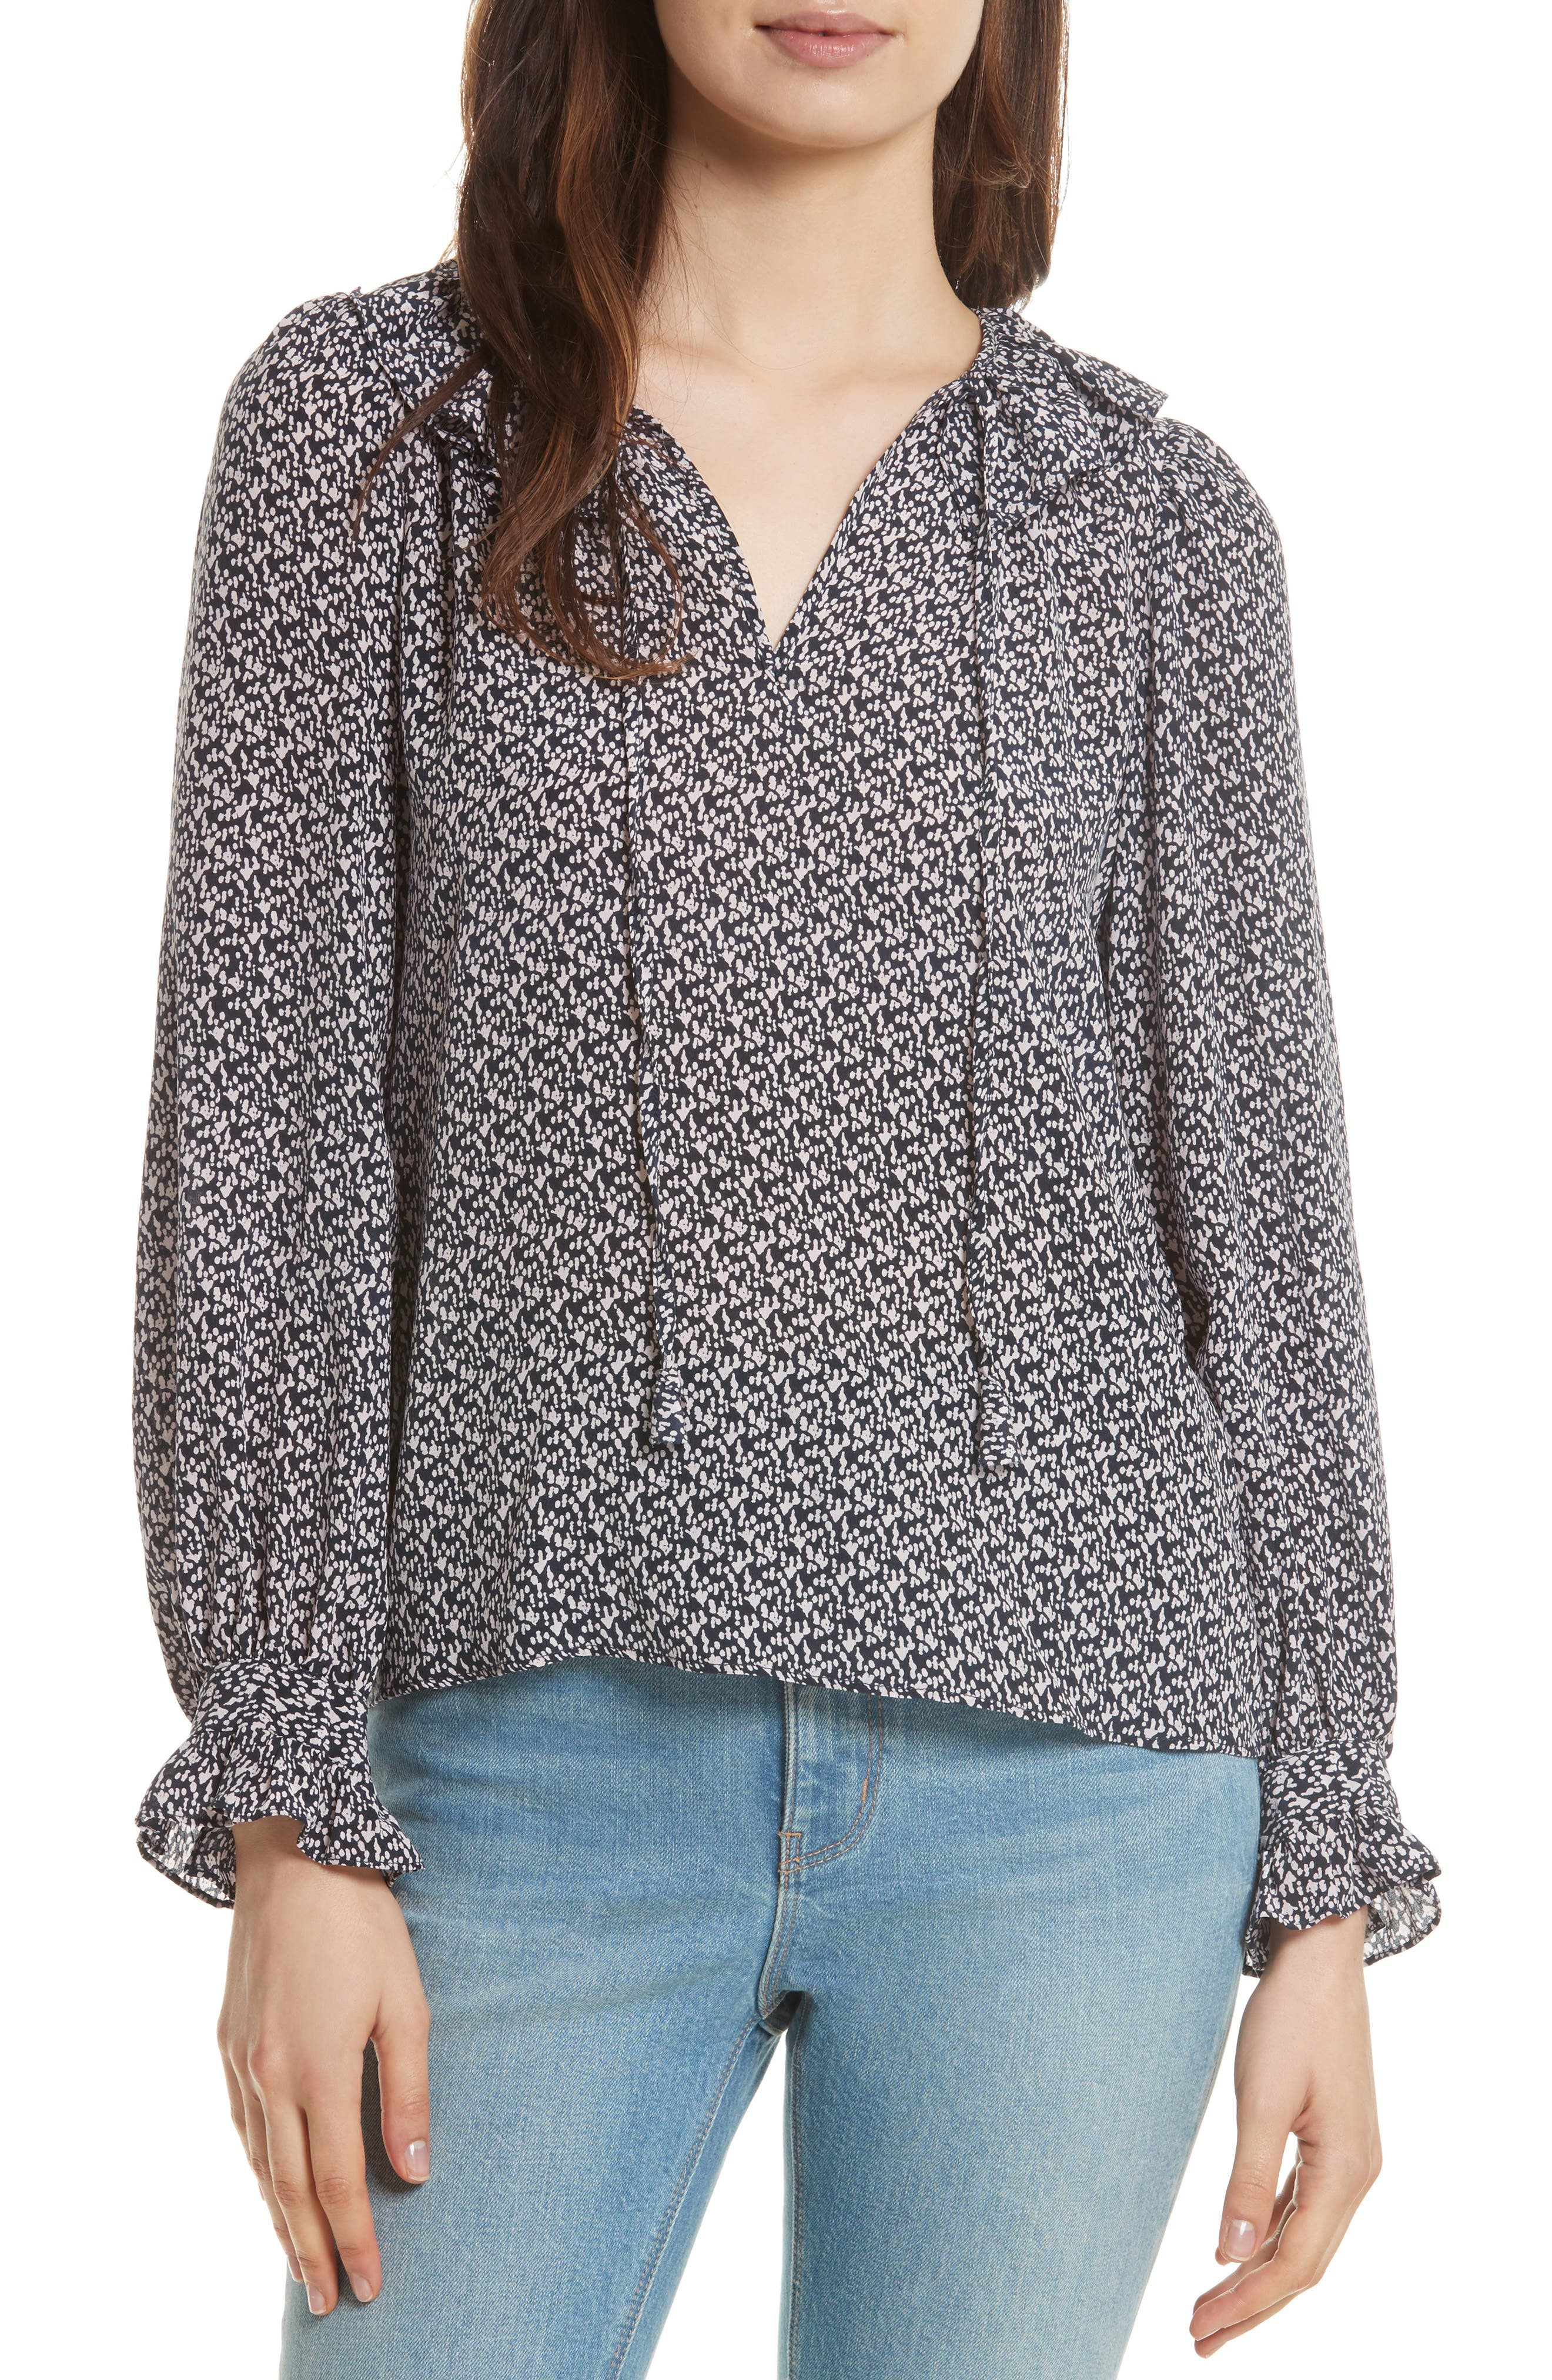 Alternate Image 1 Selected - Rebecca Taylor Static Print Blouse